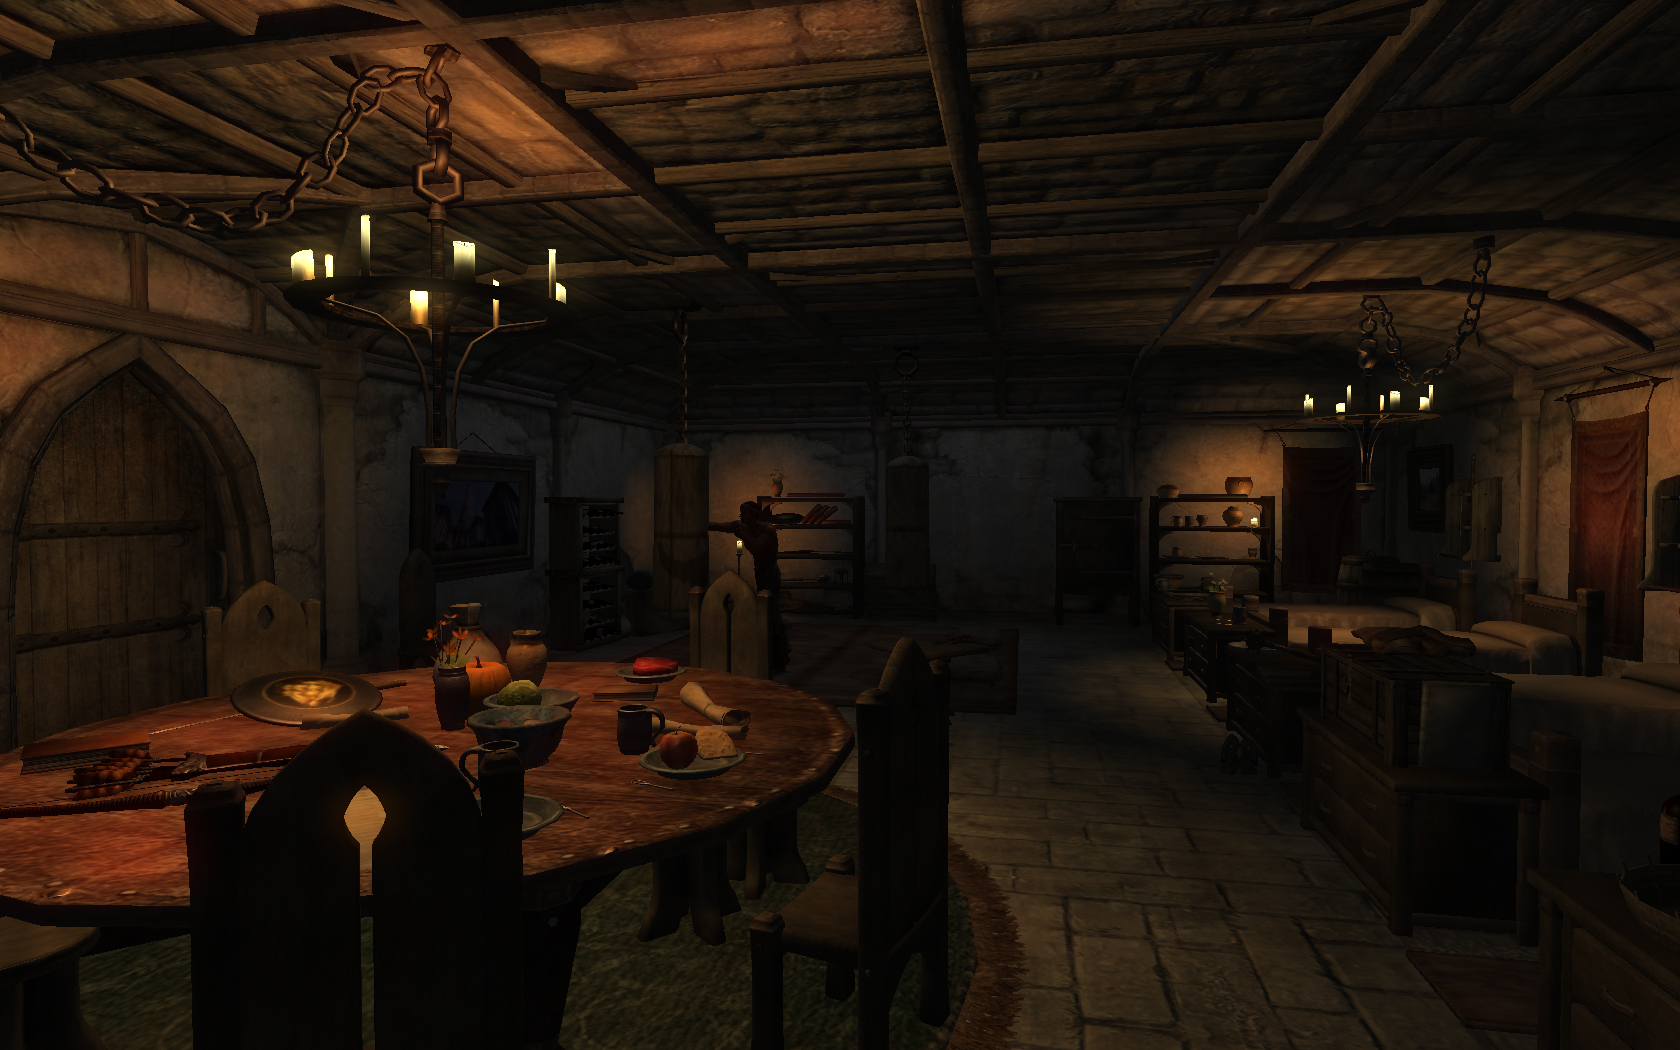 Hud Mirrors Made Smaller together with Extrem Trailer Mod as well Dramatic Dining Rooms 30 Beautiful Elegant Ideas additionally Dark Castle Interior besides 266697609161803737. on mod house interiors